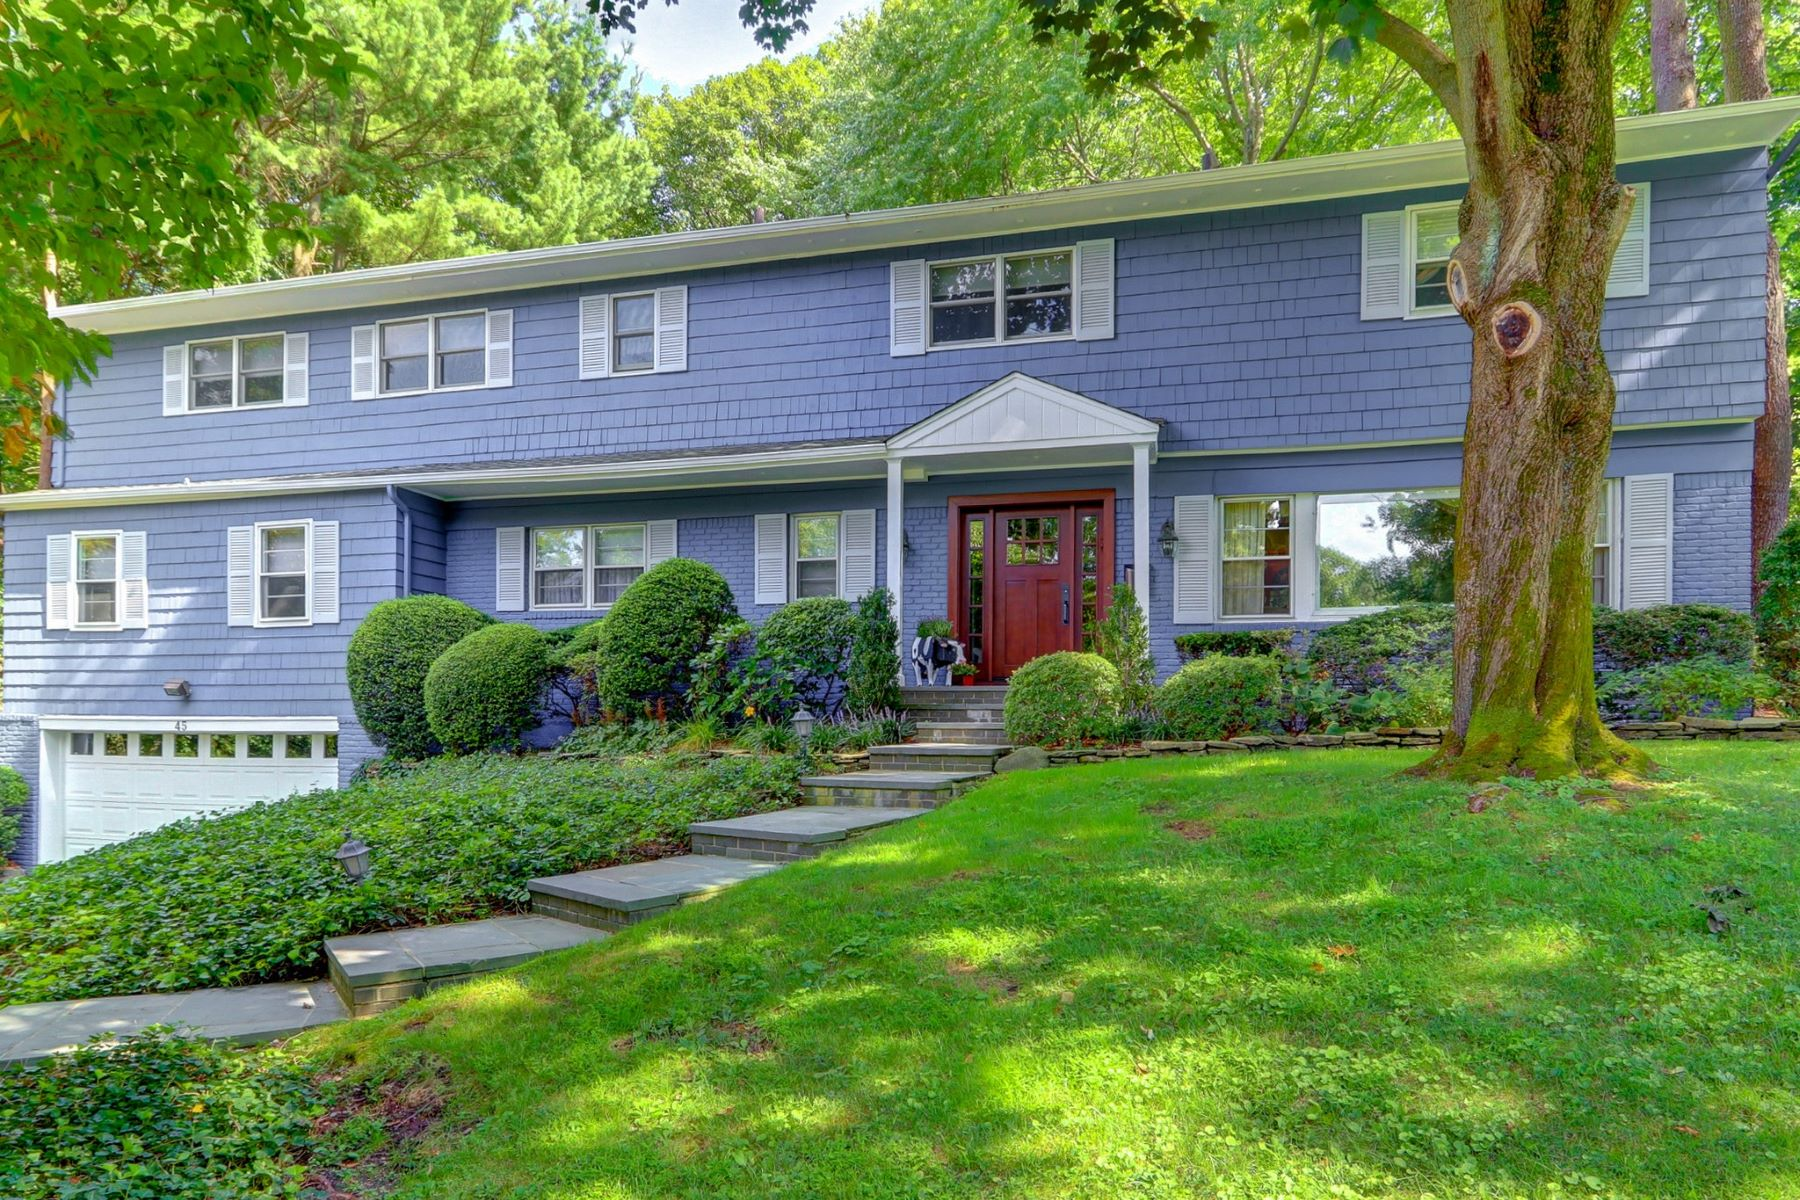 Single Family Homes for Active at 45 Fir Dr , East Hills 45 Fir Drive East Hills, New York 11576 United States